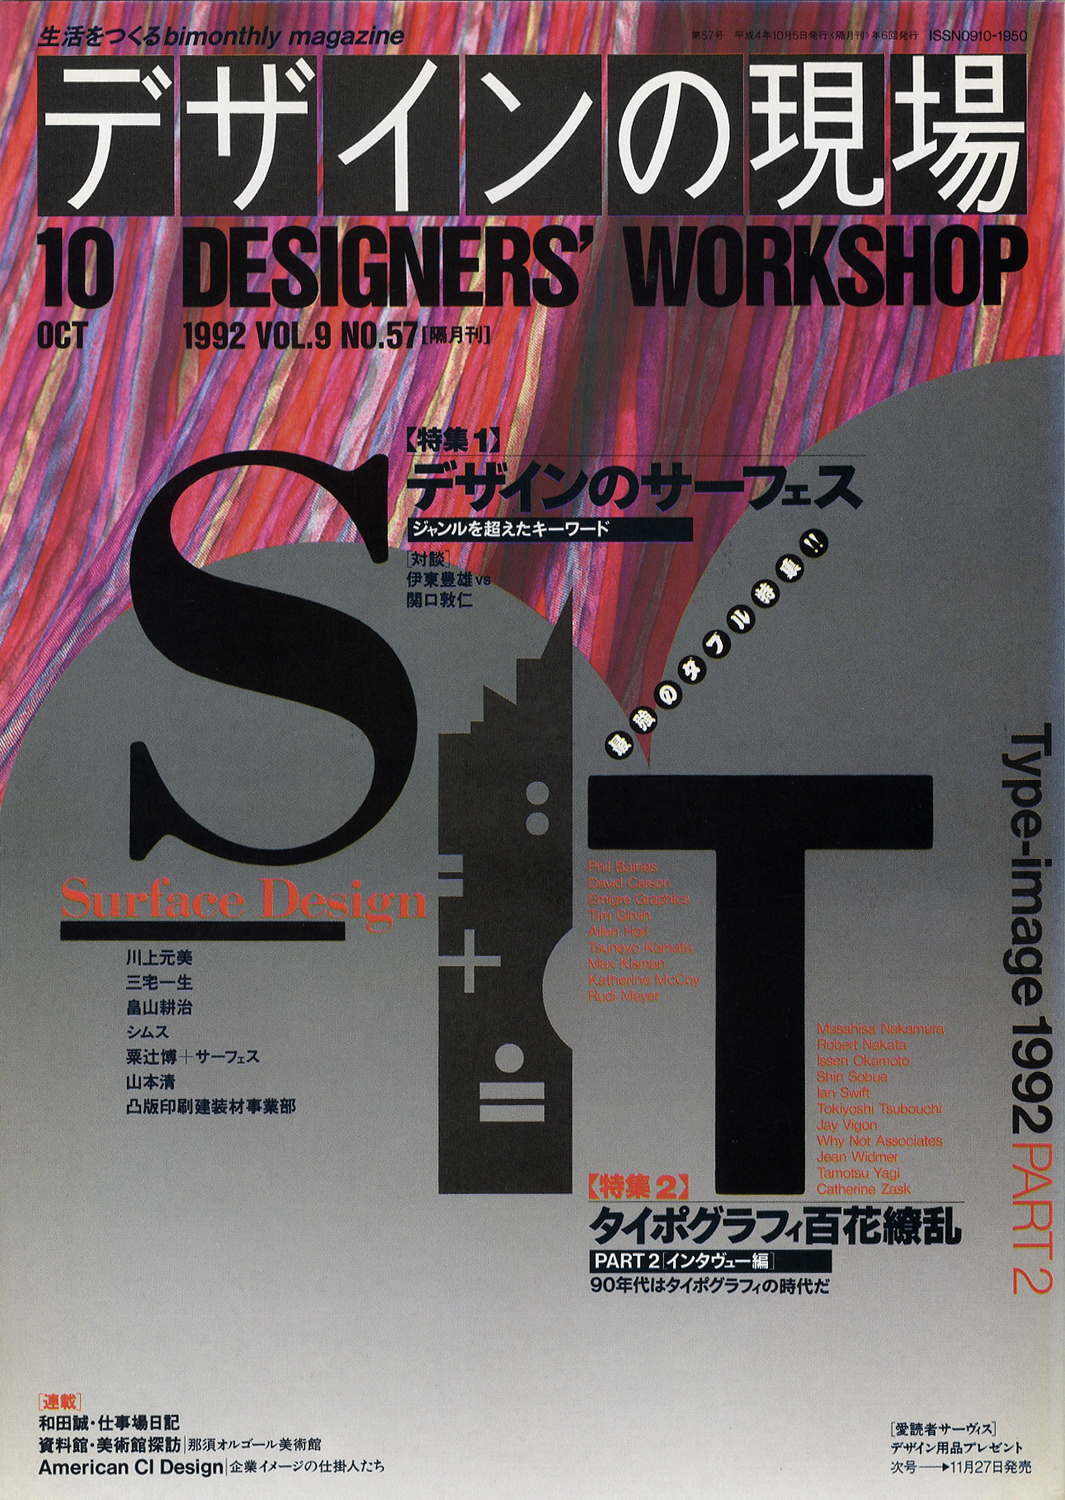 デザインの現場 DESIGNERS' WORKSHOP VOL.9 NO.57